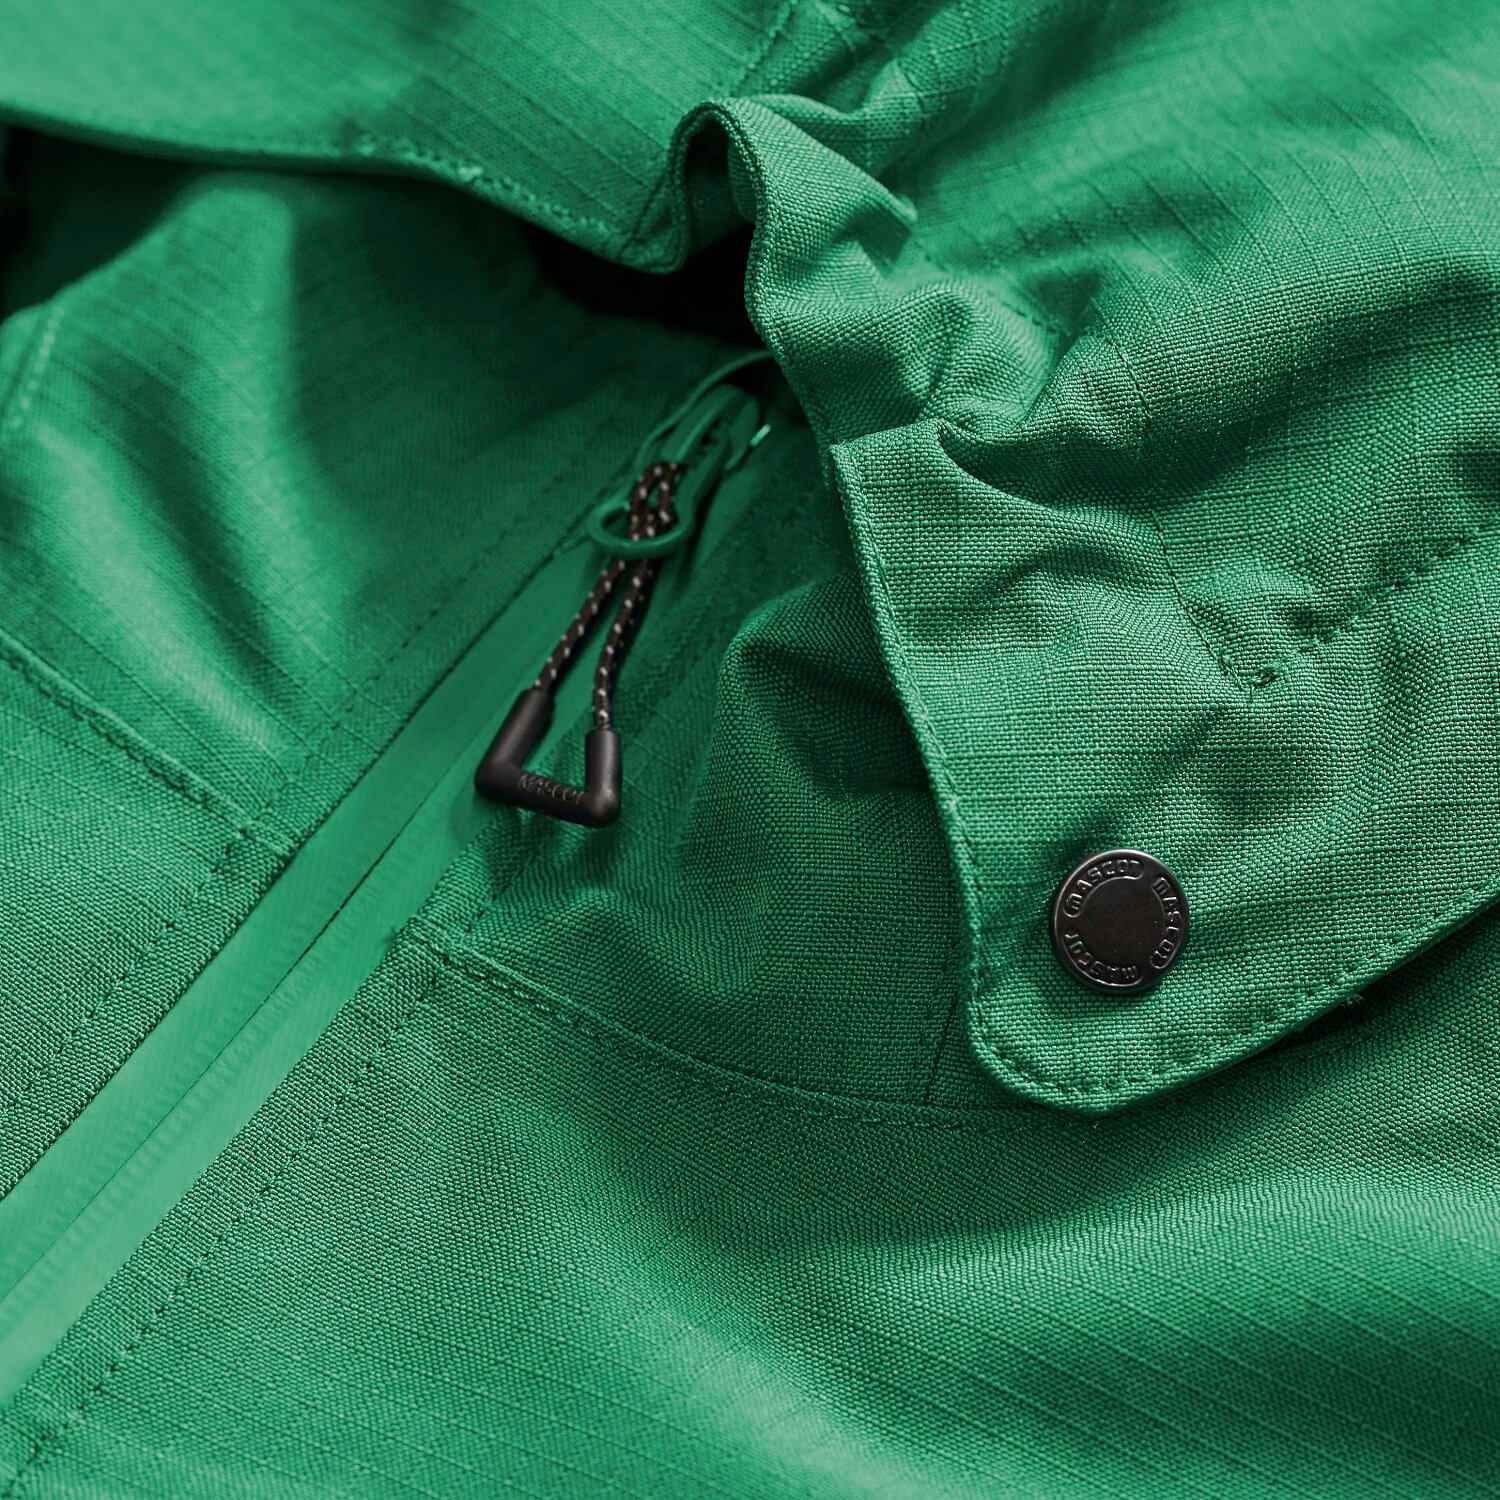 Work Jacket Green - MASCOT® ACCELERATE - Detail